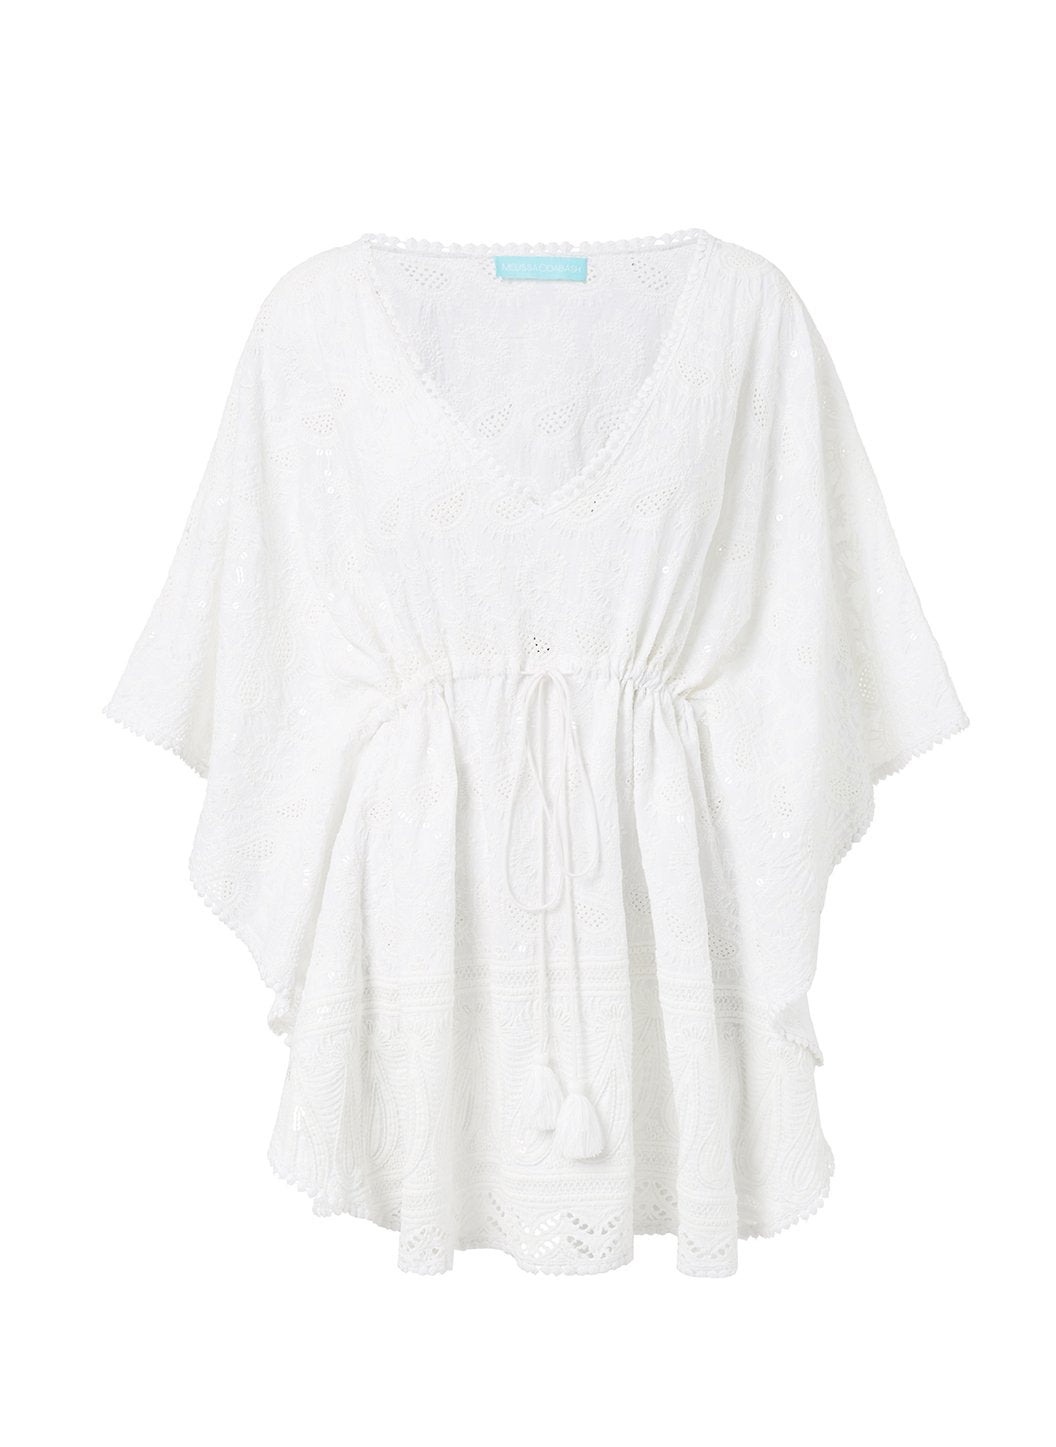 trixie white textured vneck kaftan 2019